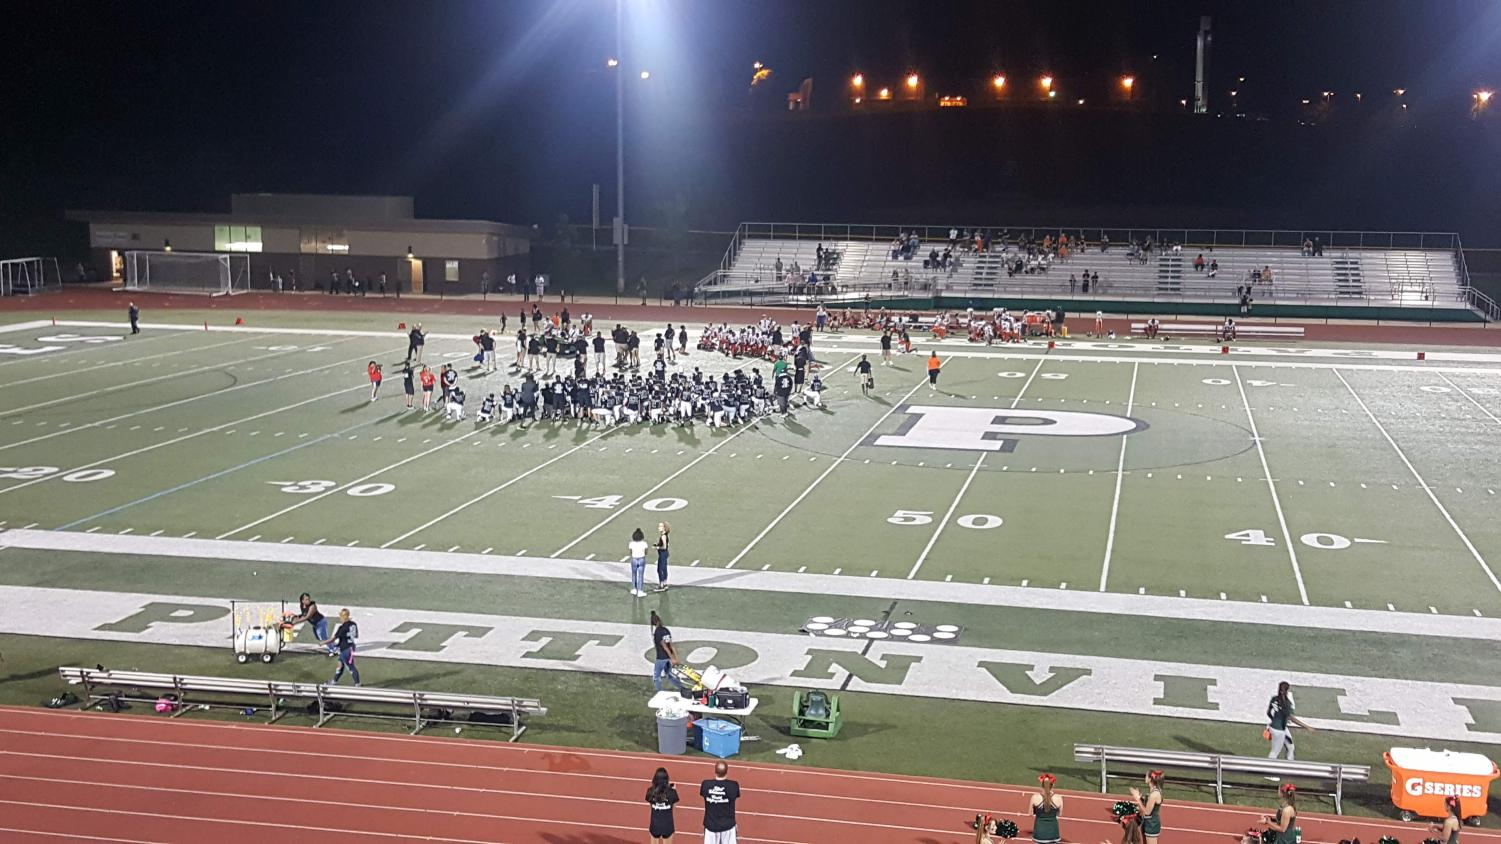 The Pattonville and Webster Groves football teams kneel in respect for the injured player as he is being treated on the field.